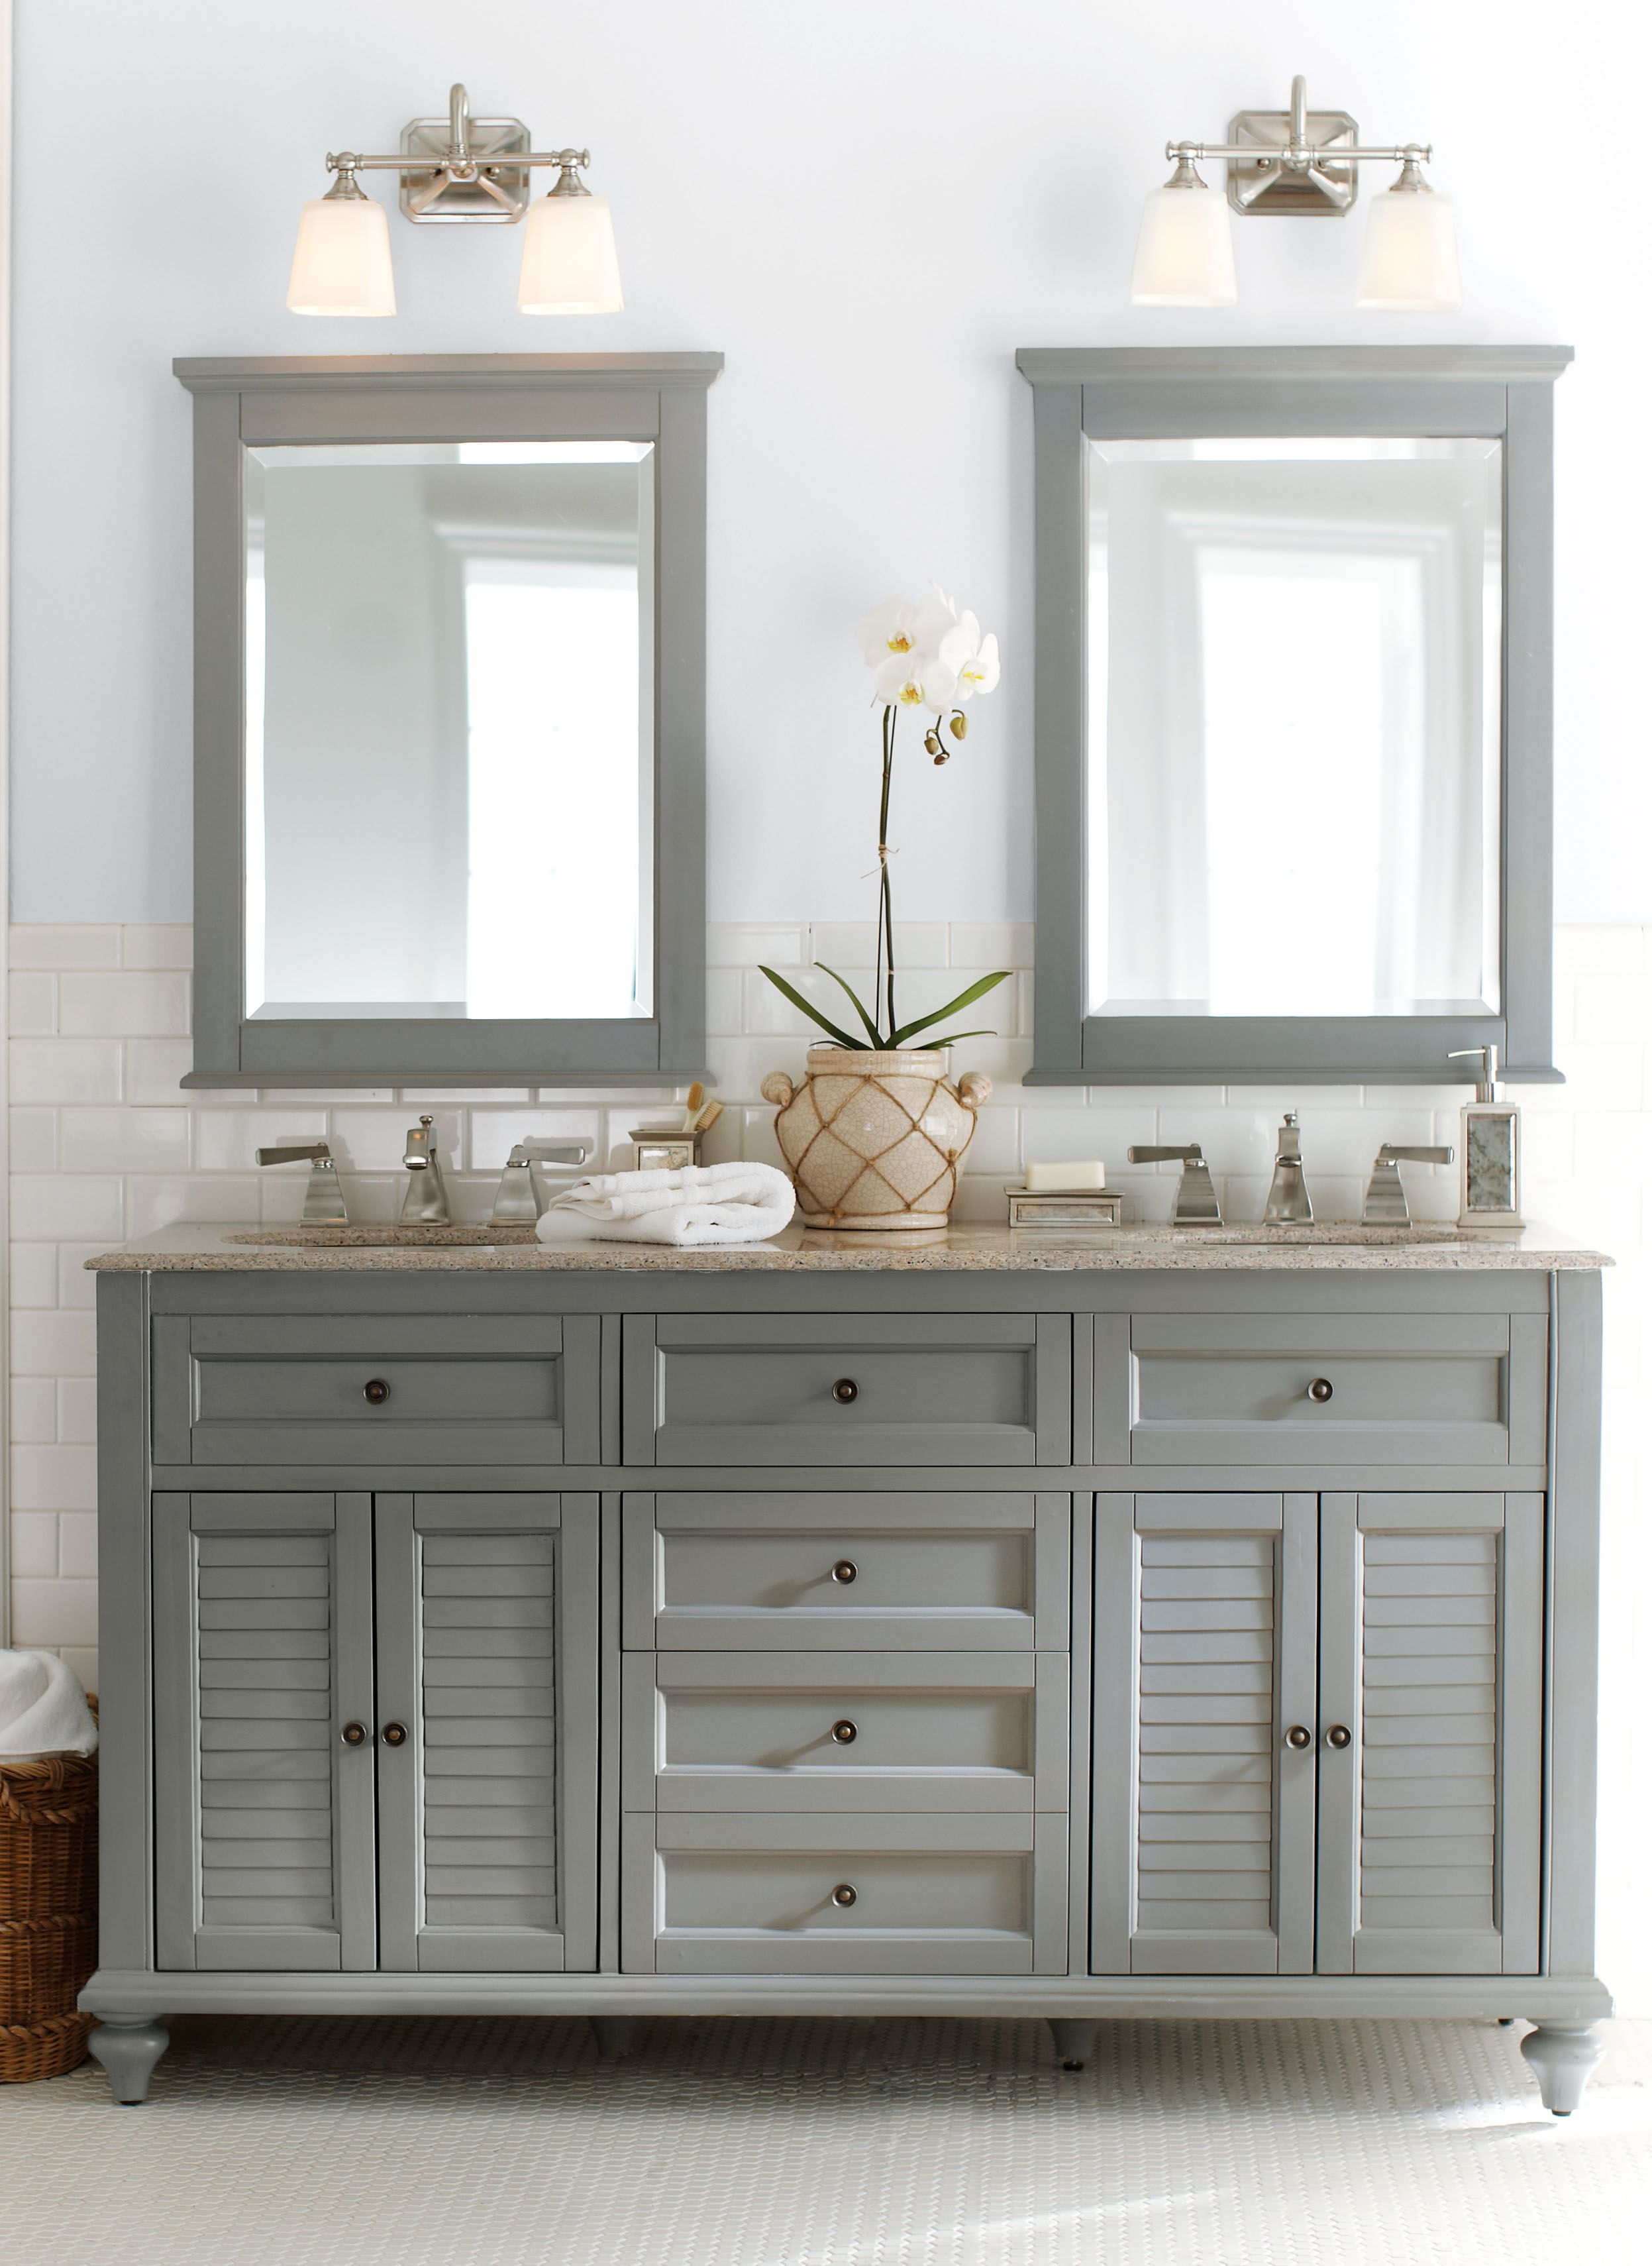 Gorgeous in grey. Double the fun, this bath vanity is a master